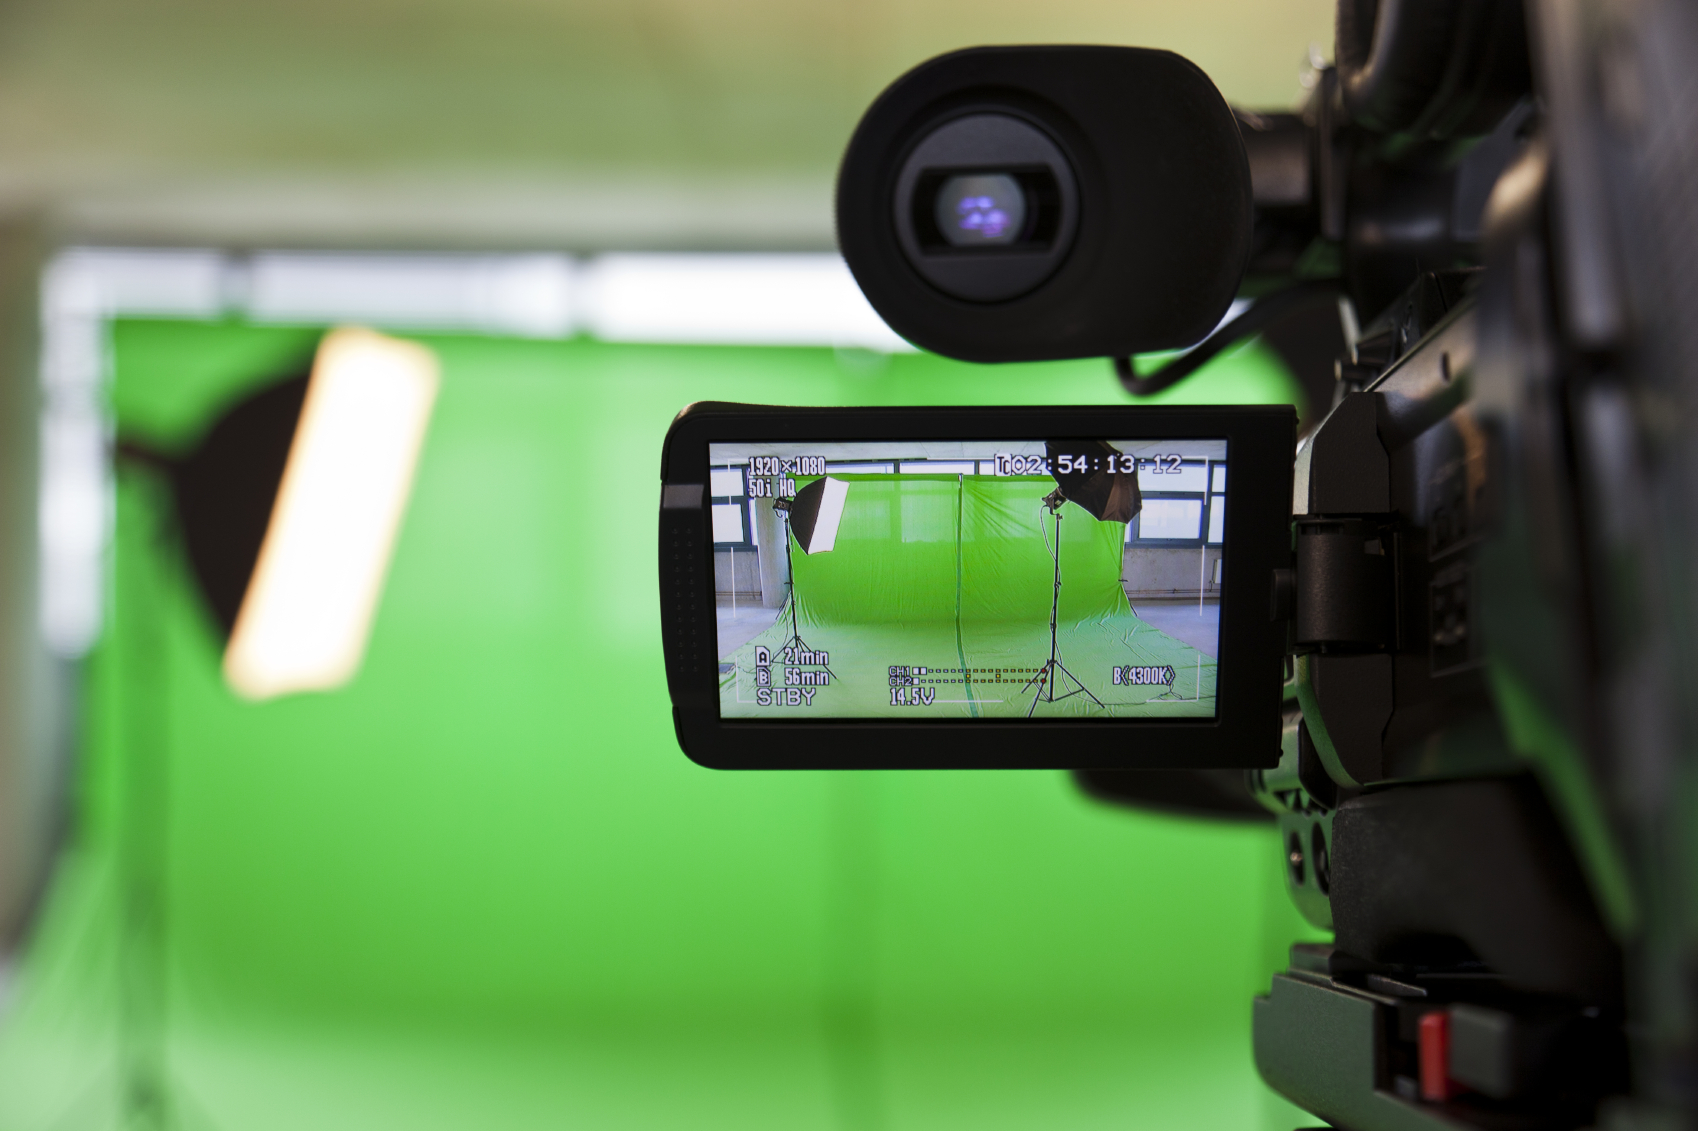 """Corporate Video Production Video Camera with a """"Green Screen"""" backdrop"""